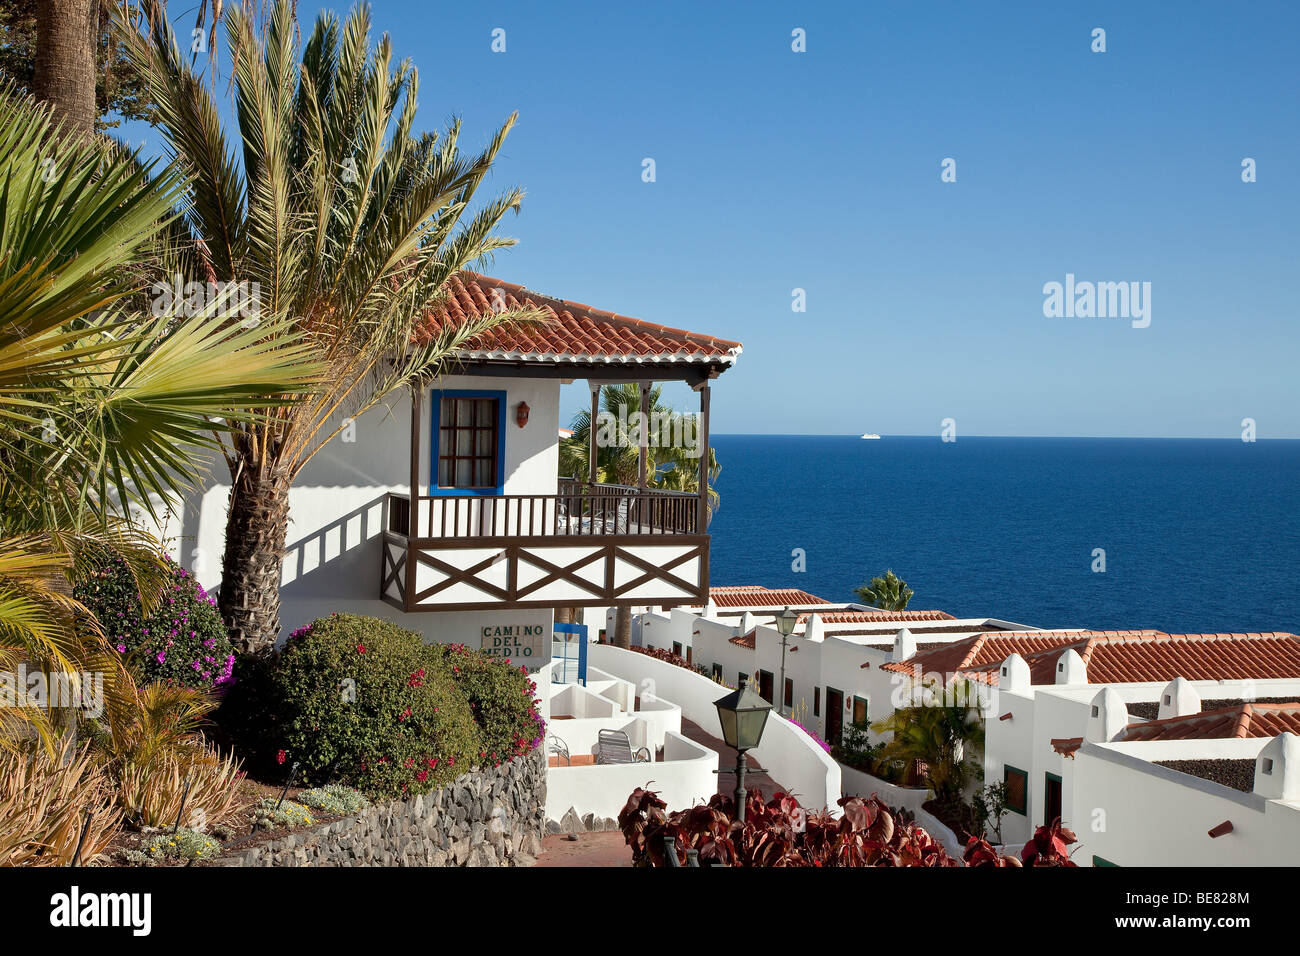 The jardin tecina hotel with sea view in the sunlight for Hotel jardin tecina la gomera